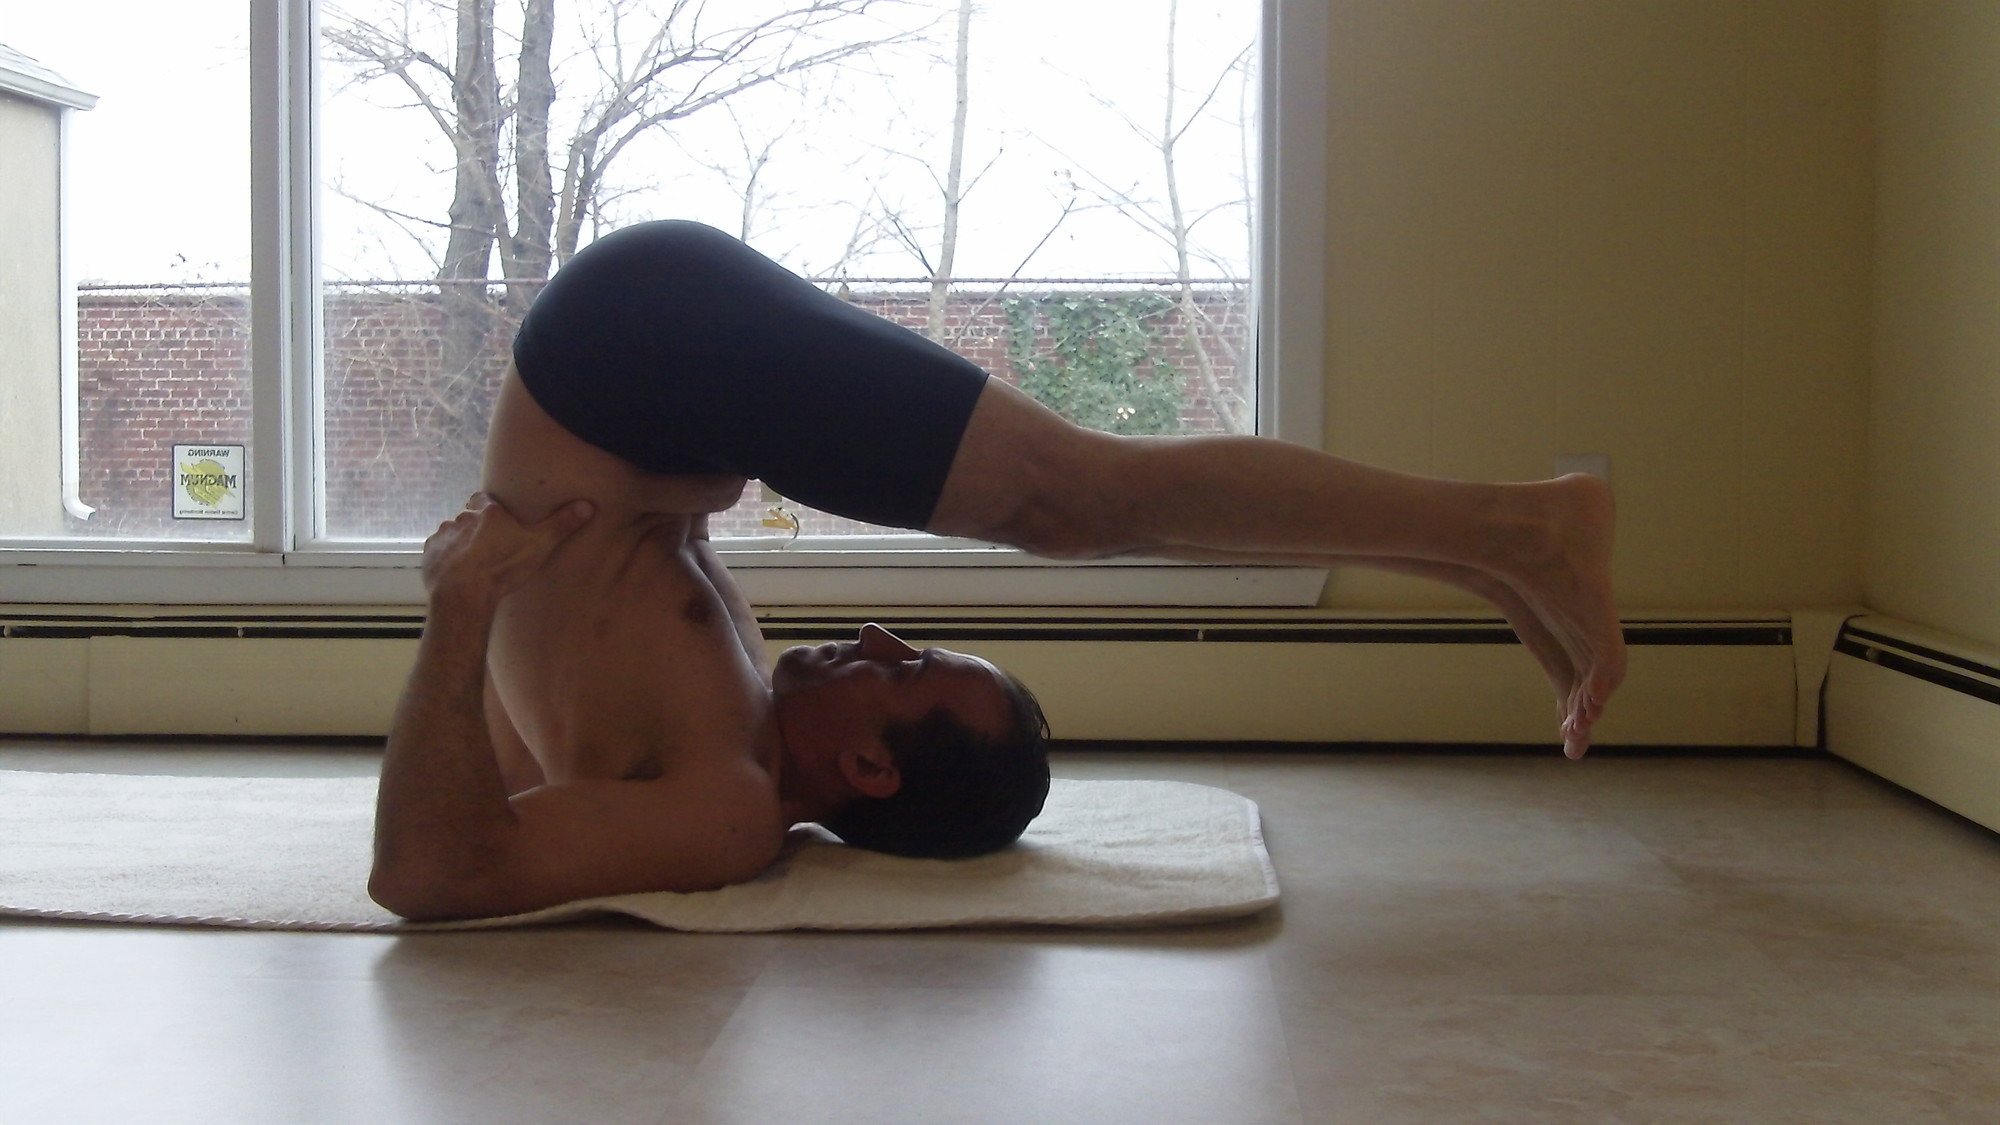 Joseph Parenti practices Bikram yoga regularly, saying the poses and the heat are great therapies for his neck.